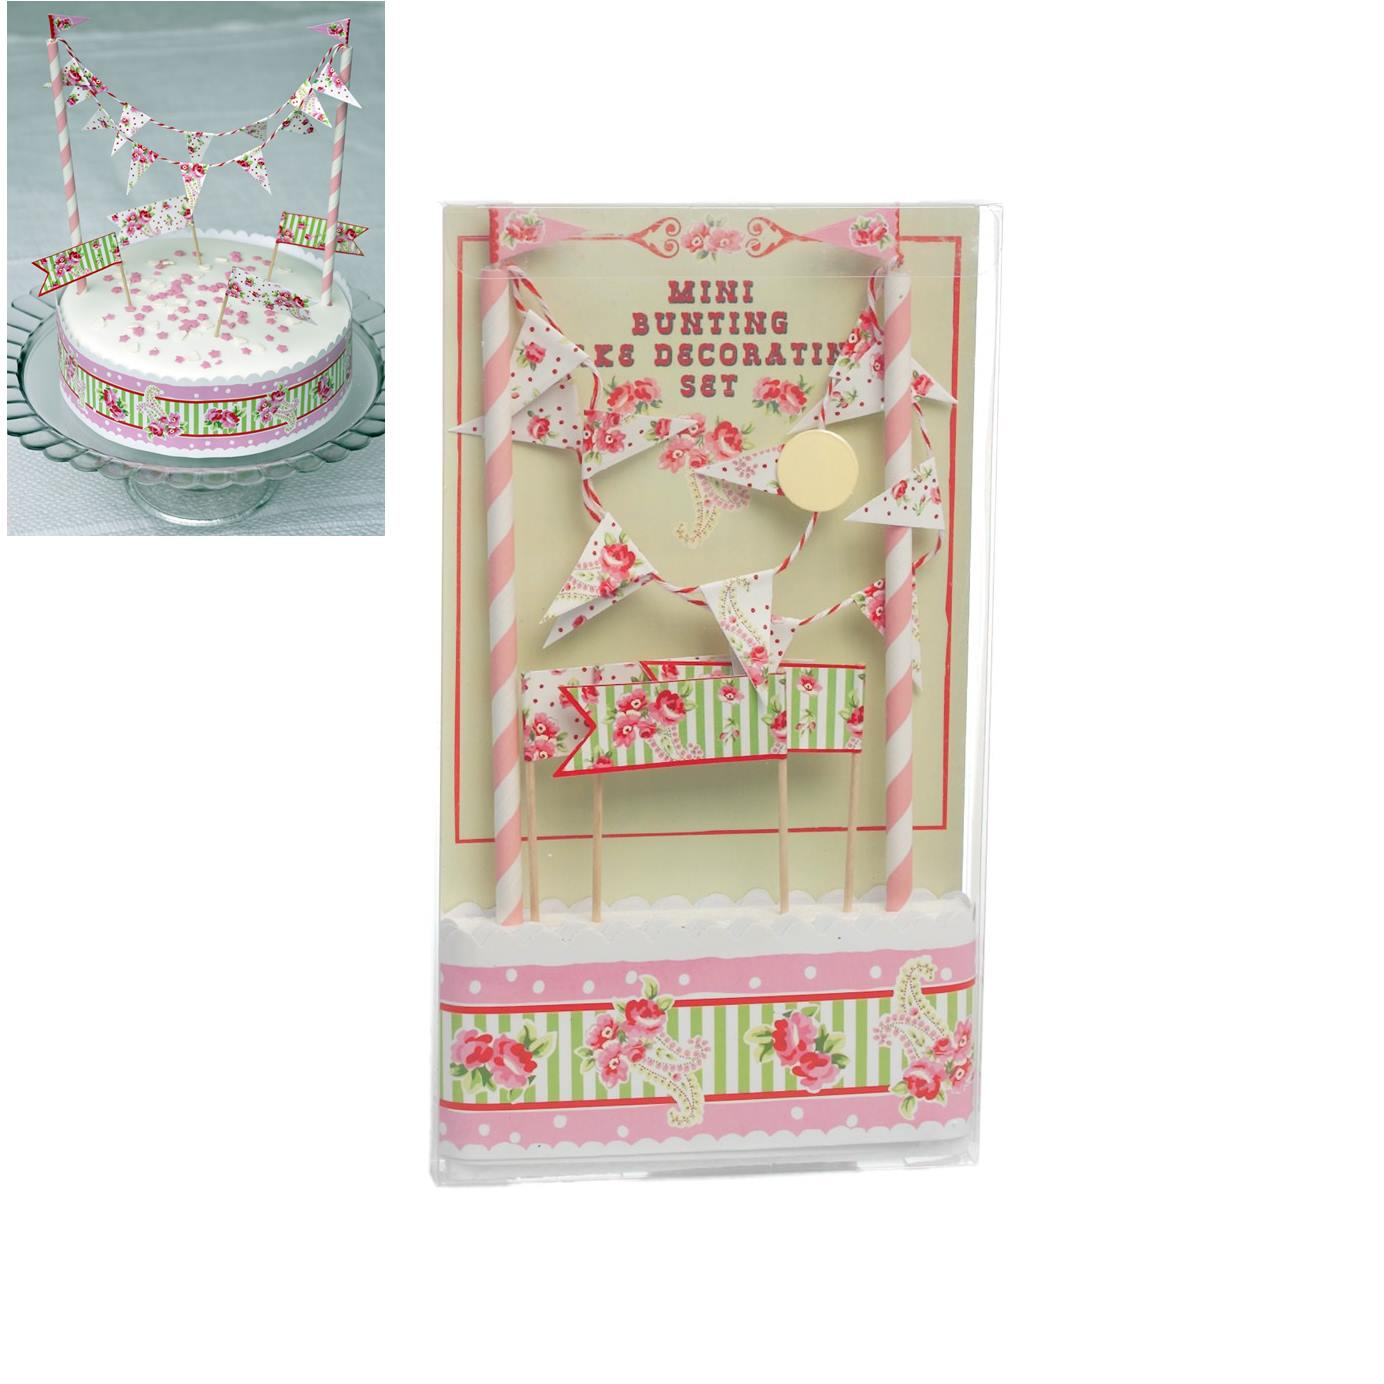 Kit para decorar Tartas Paisley Rose